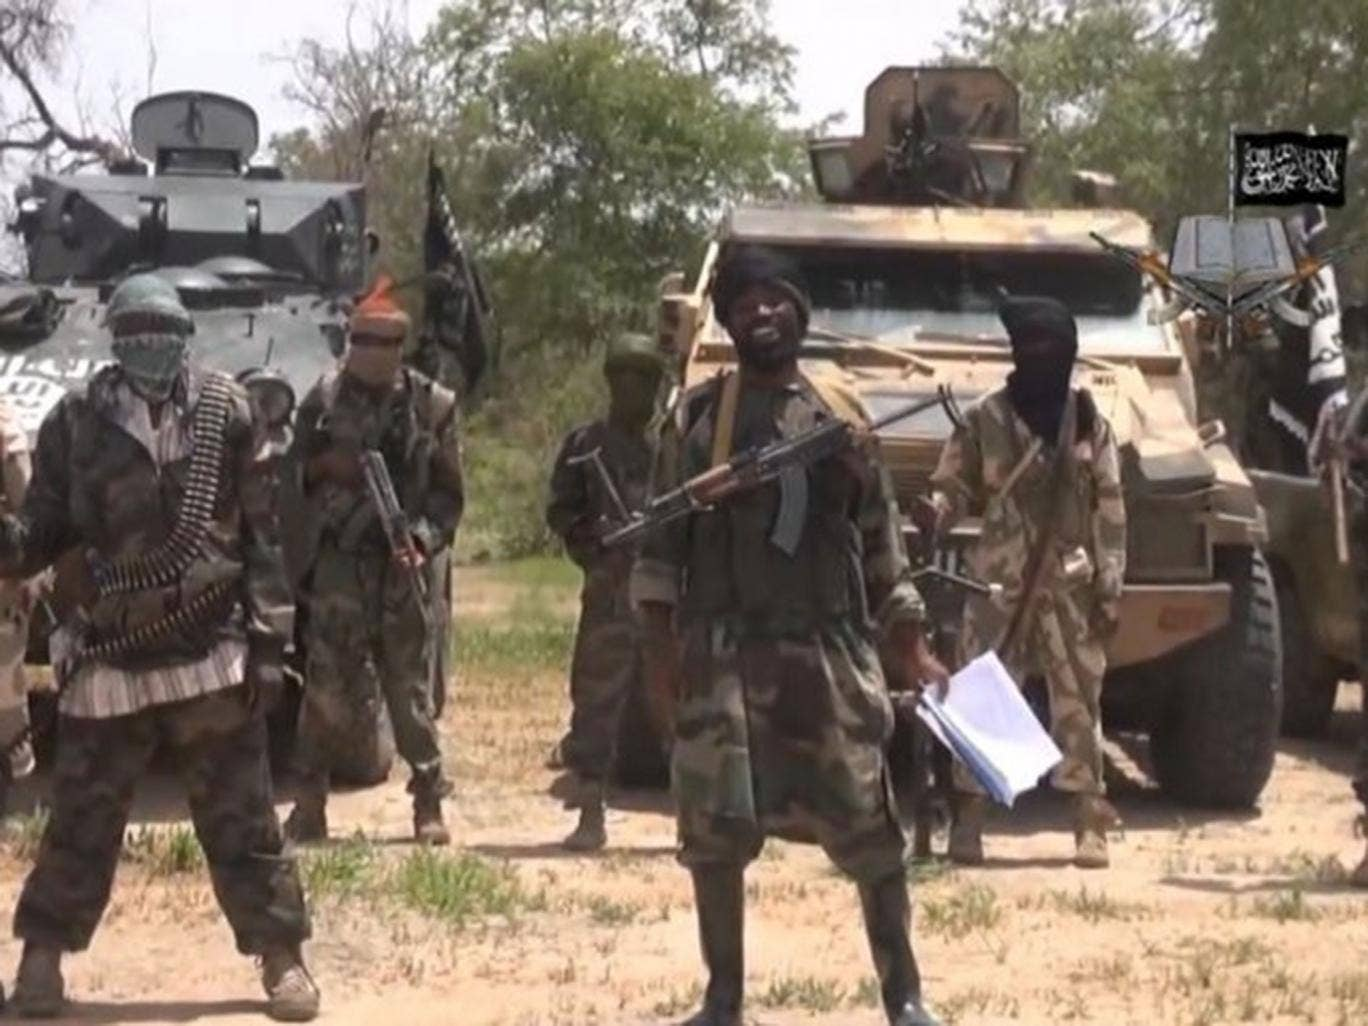 A screengrab taken on July 13, 2014 from a video released by the Nigerian Islamist extremist group Boko Haram, showing the leader of the Nigerian Islamist extremist group Boko Haram, Abubakar Shekau